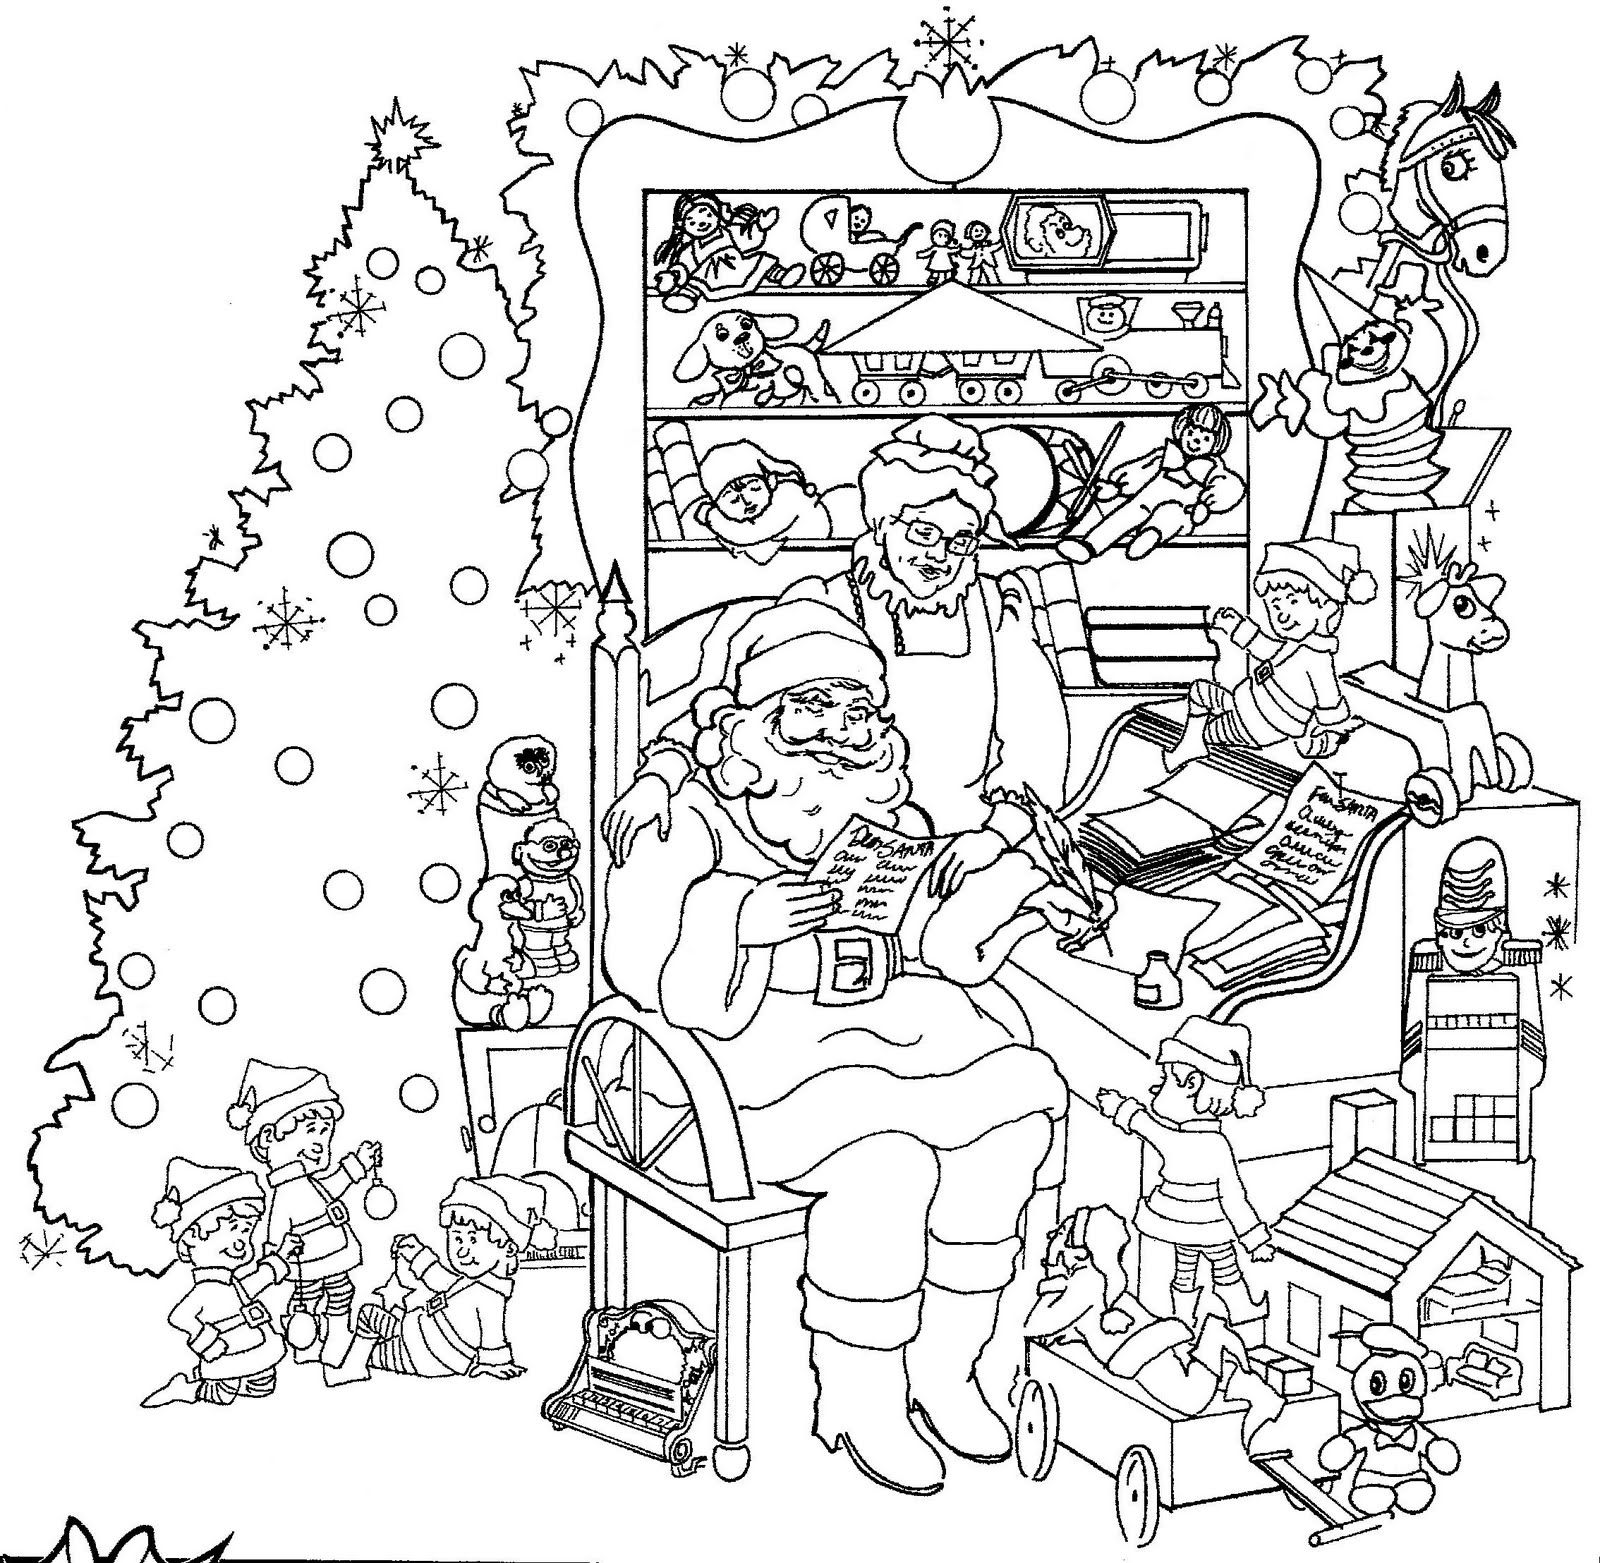 Christmas Coloring Contest 1981 Printable Christmas Coloring Pages Santa Coloring Pages Christmas Coloring Sheets